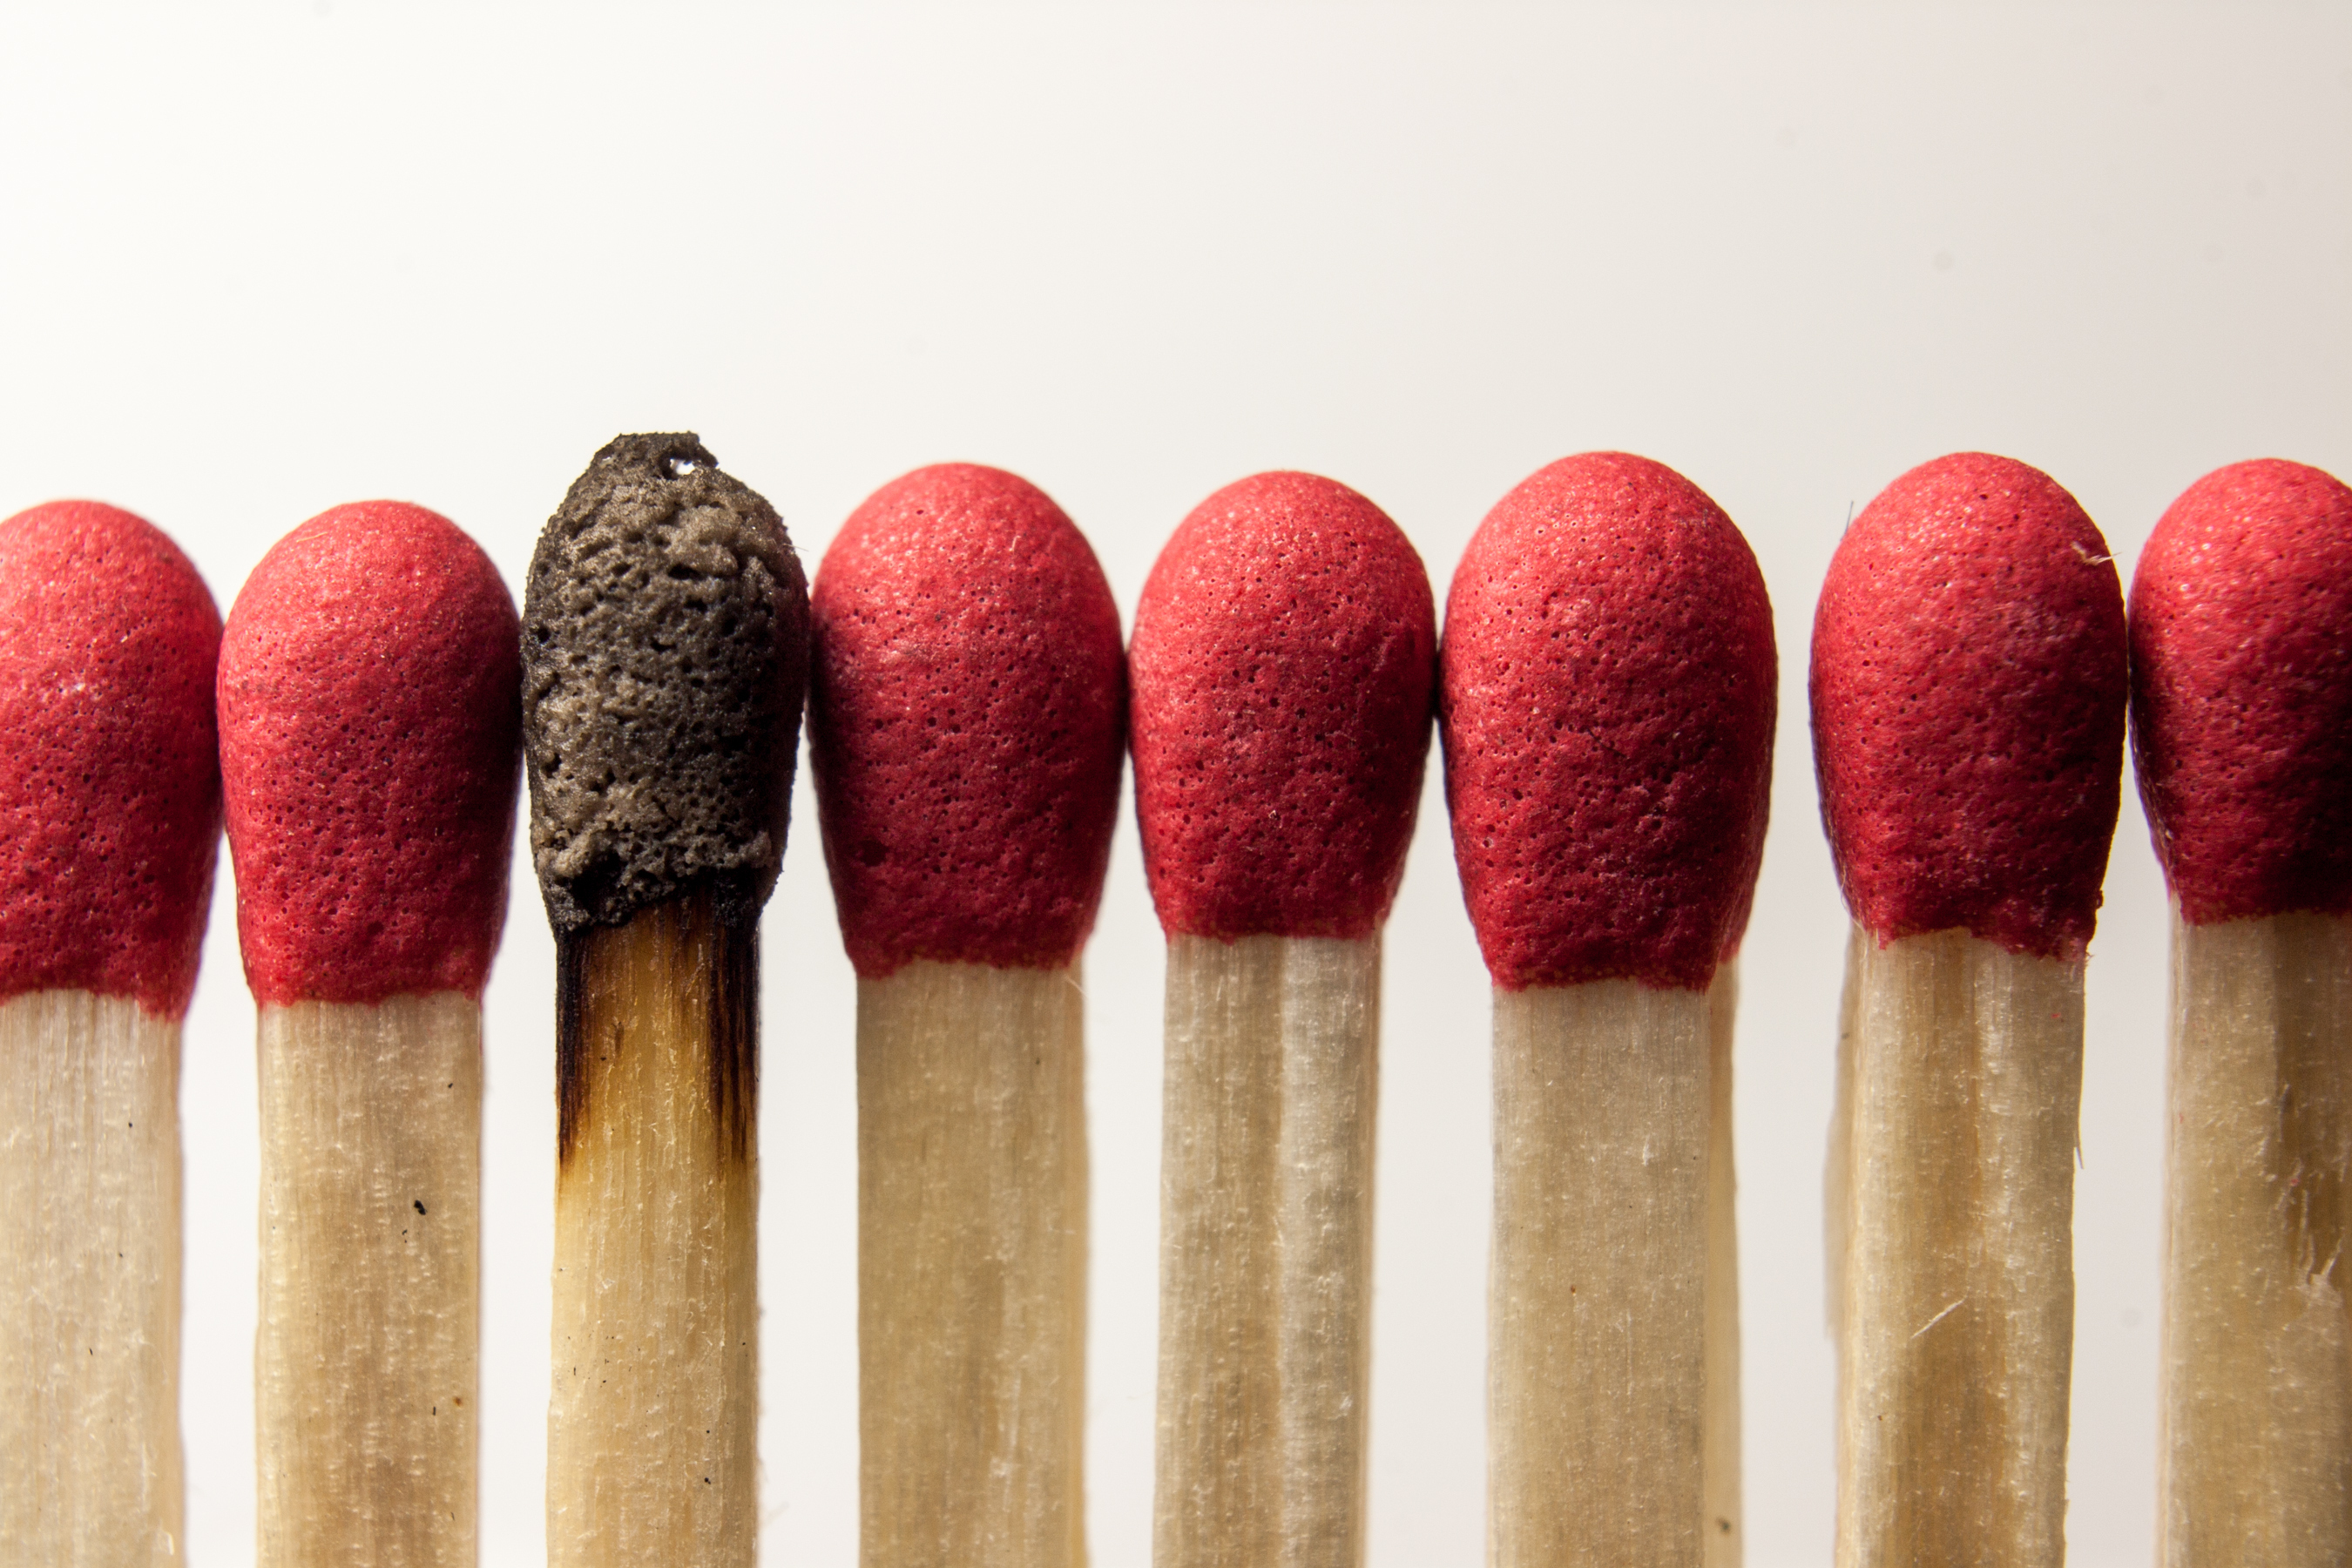 3 Symptoms of Burnout to Watch Out For